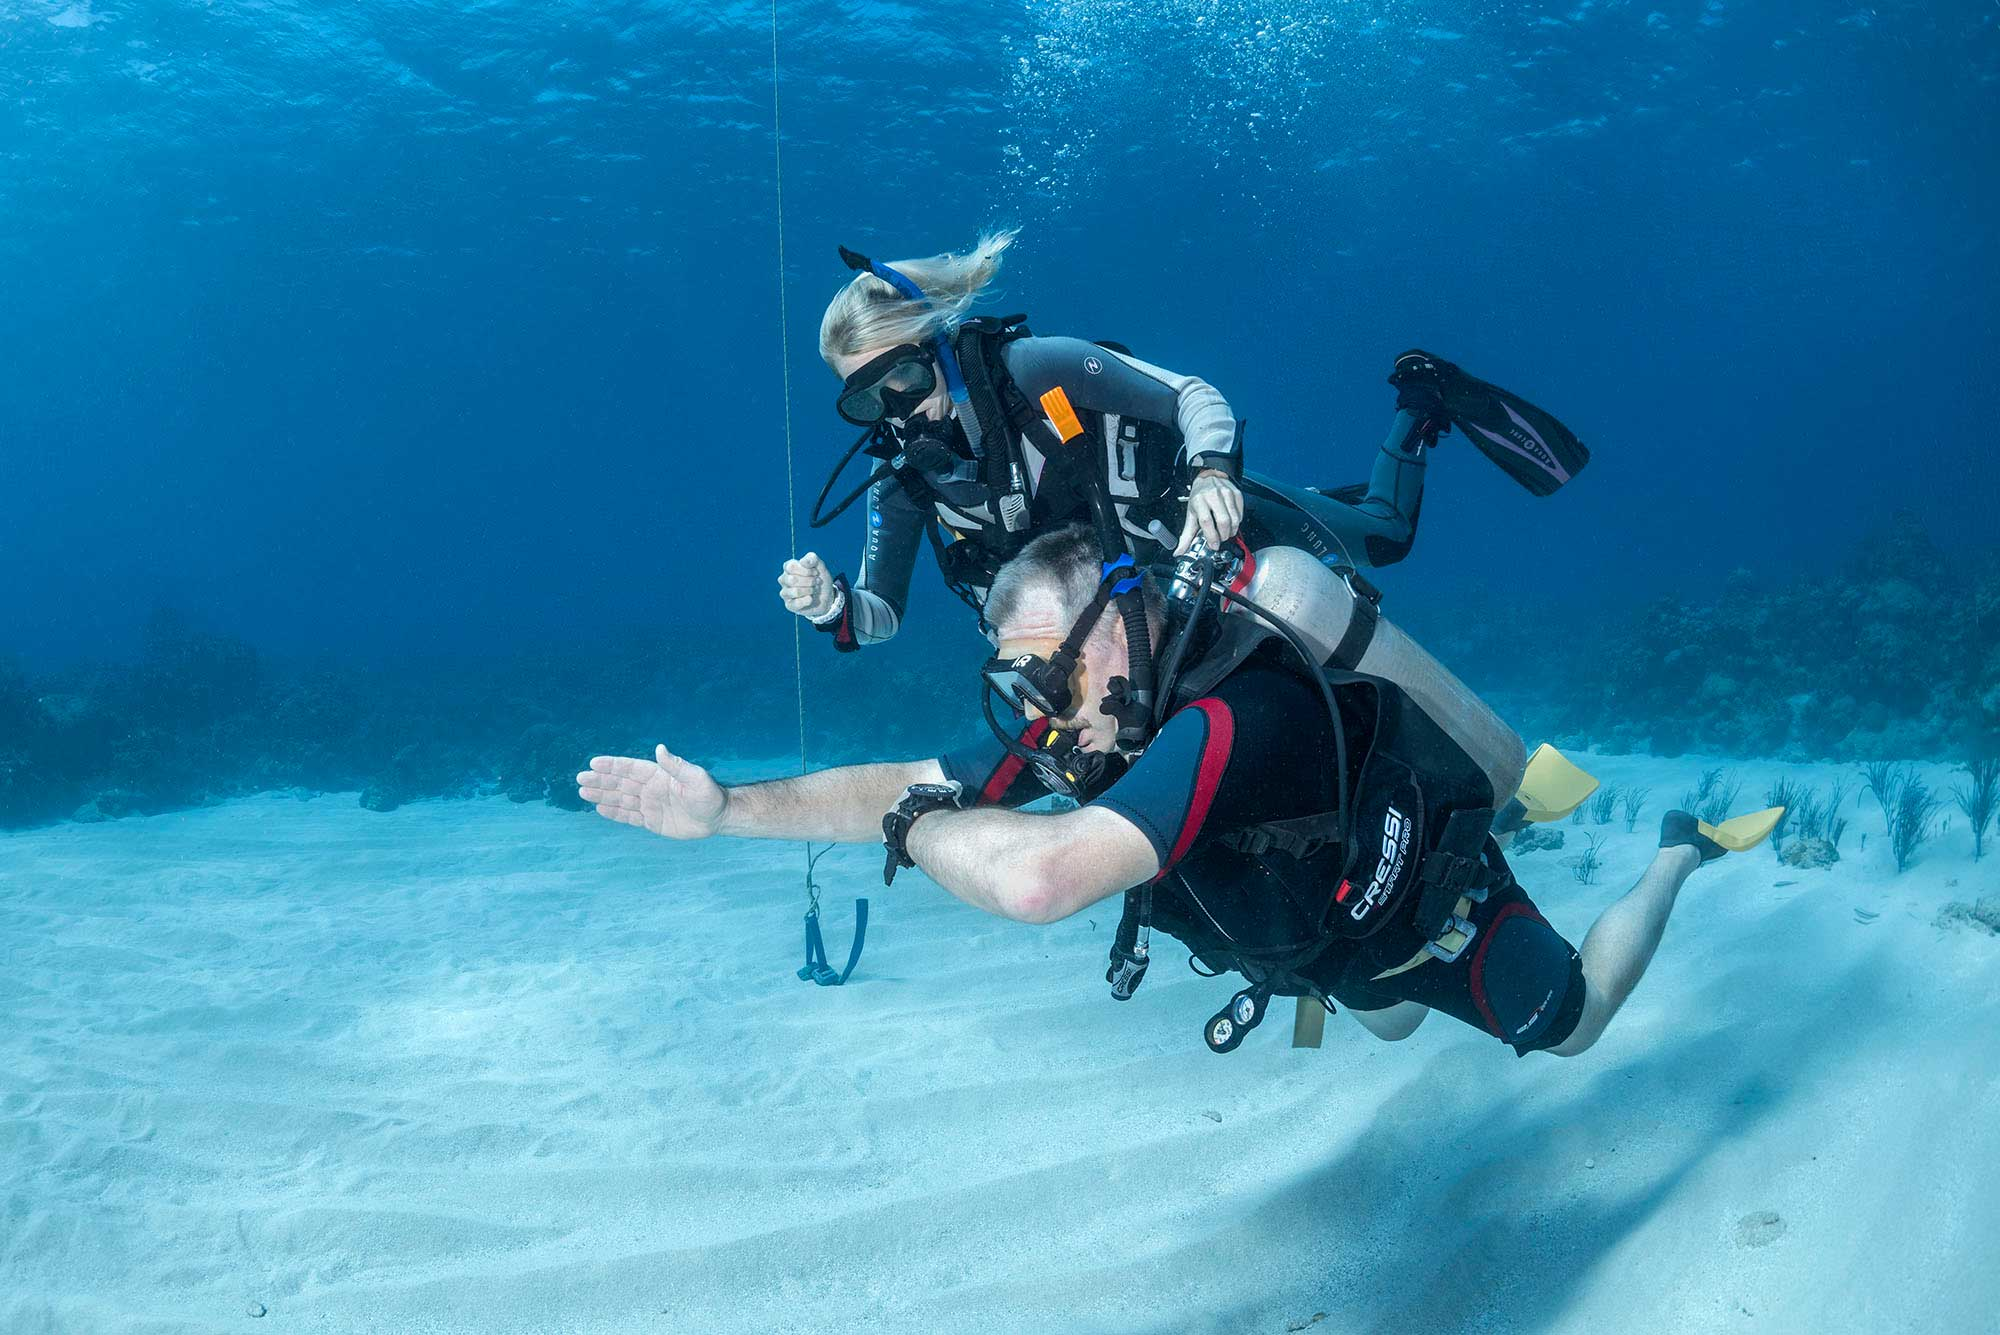 Instructor development course candidate teaching navigation skills to a student scuba diver